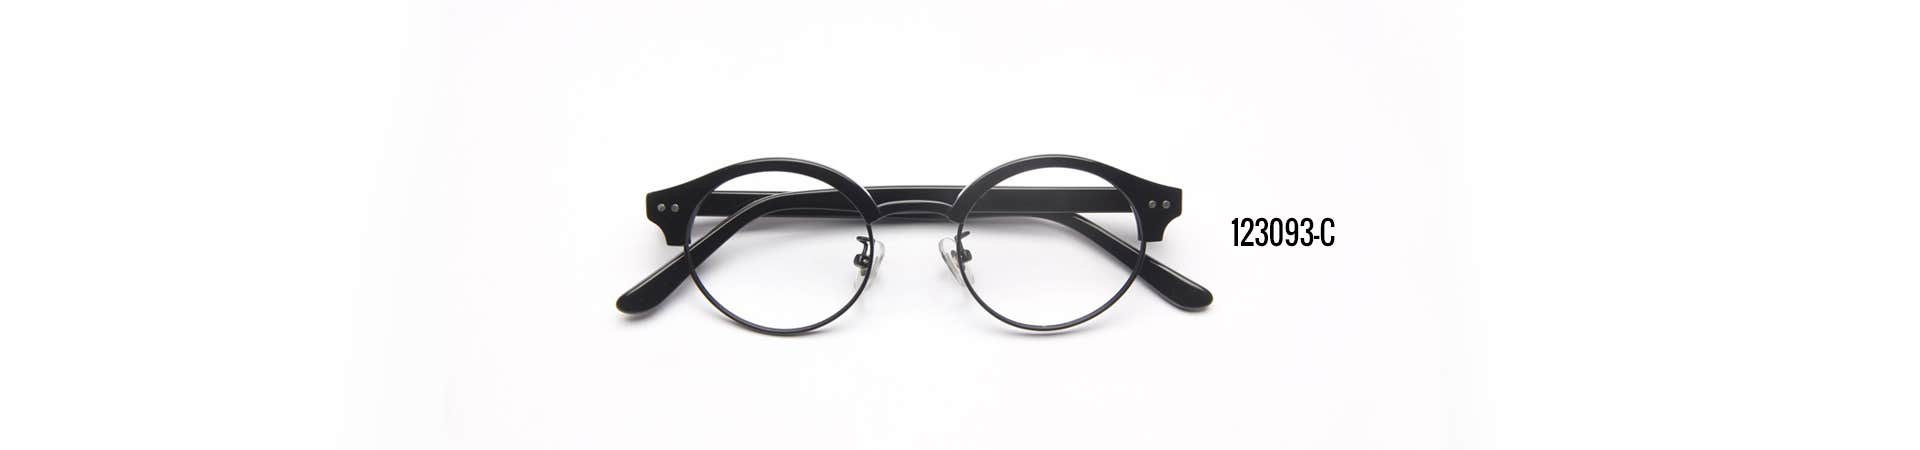 Buy Black Spring Frames at Goggles4U UK